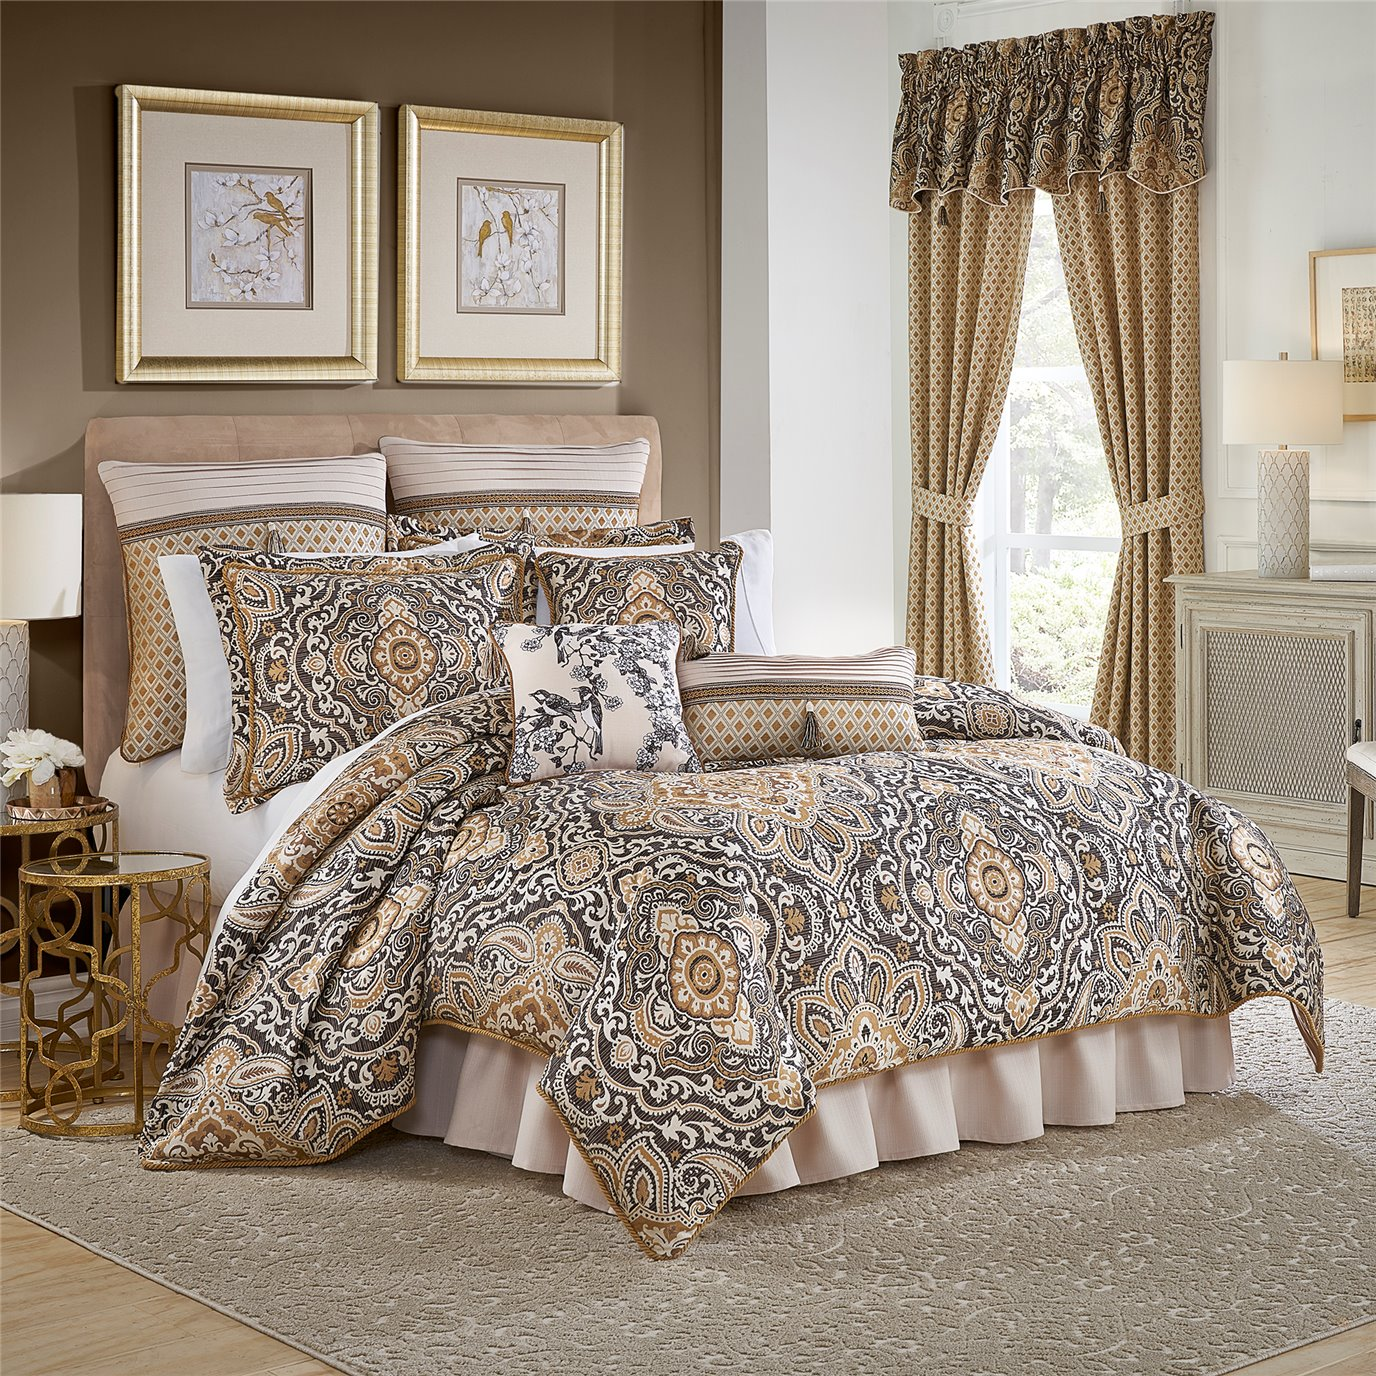 Philomena King 4 Piece Comforter set